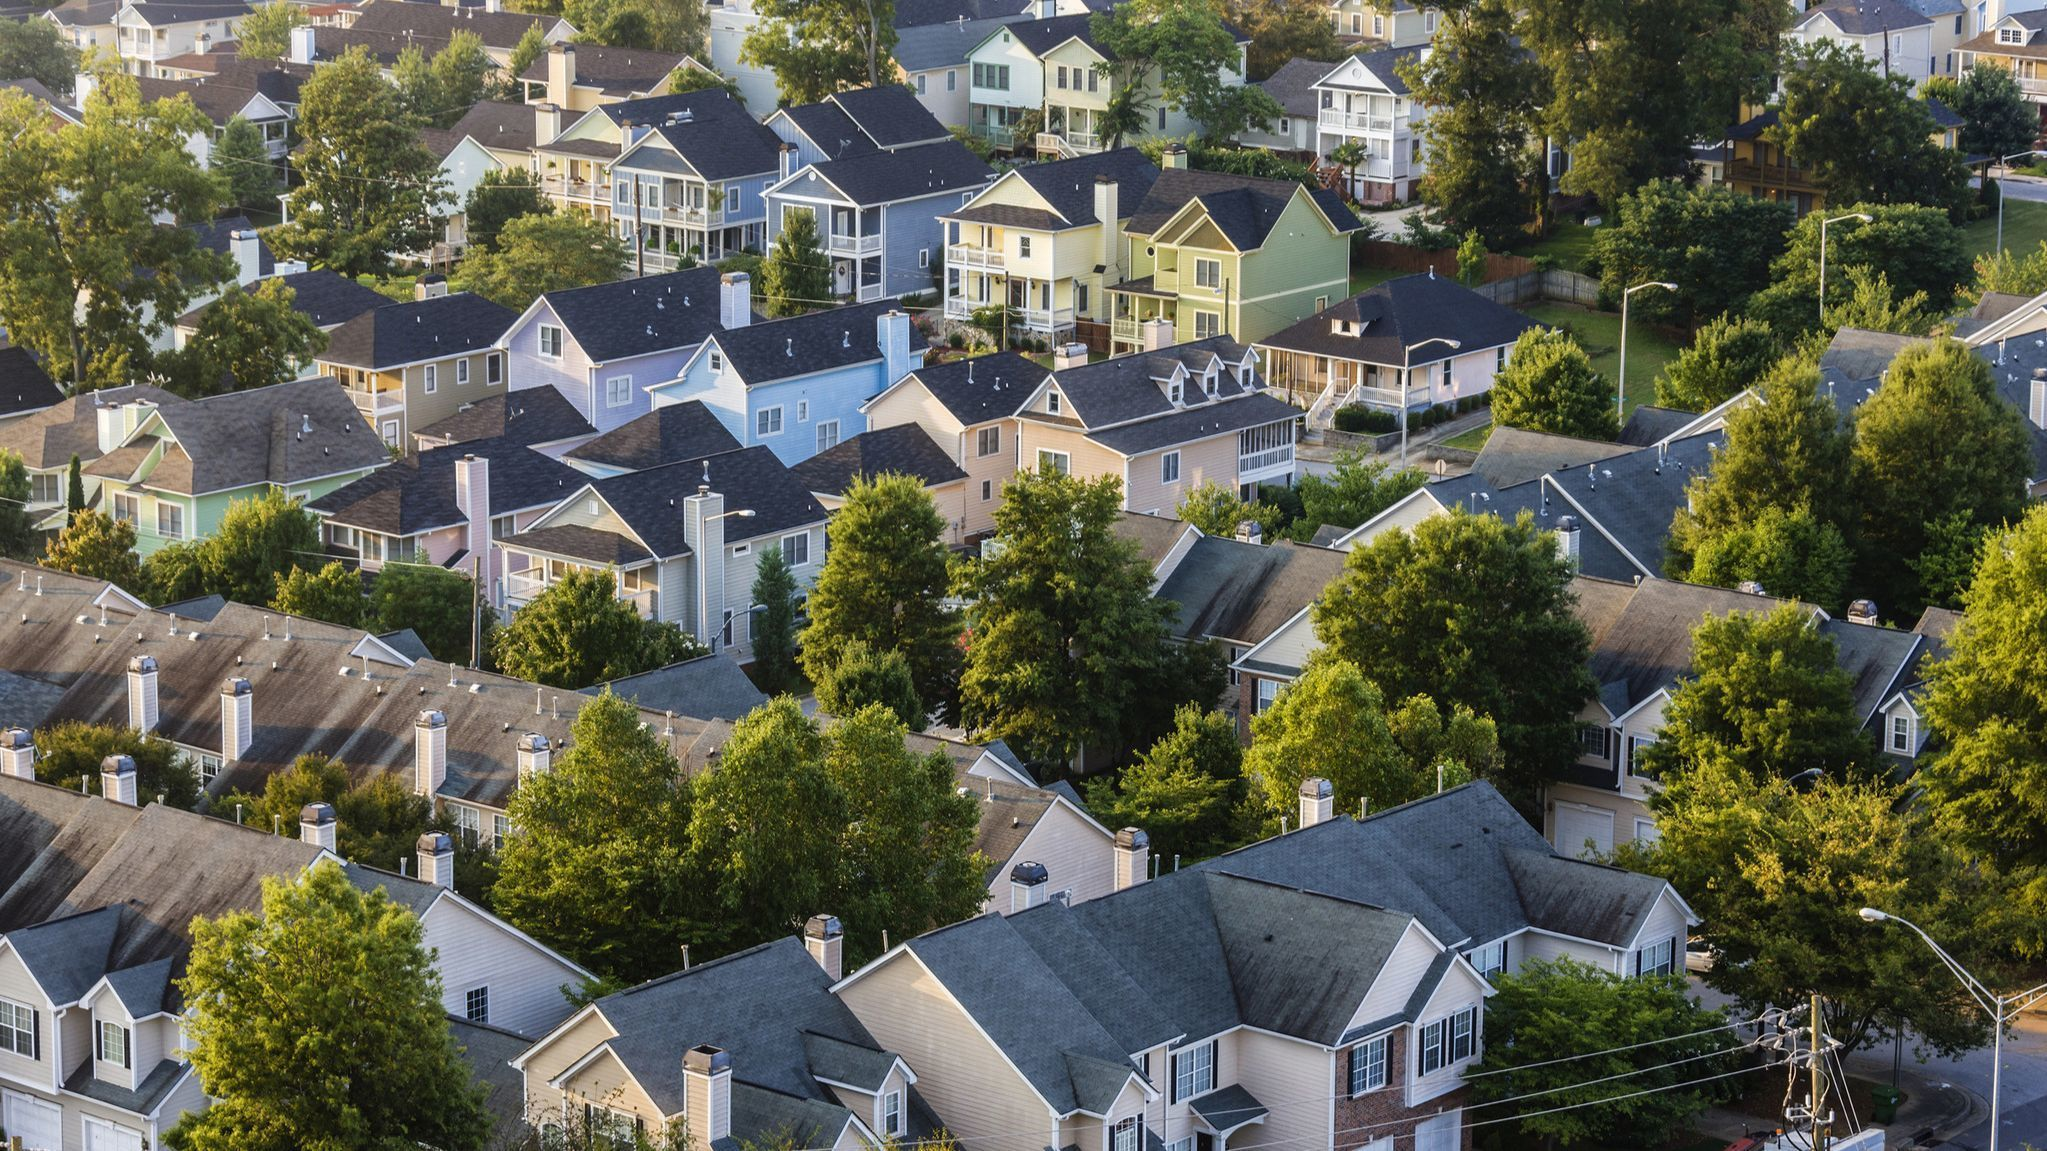 Housing market shows signs of hope